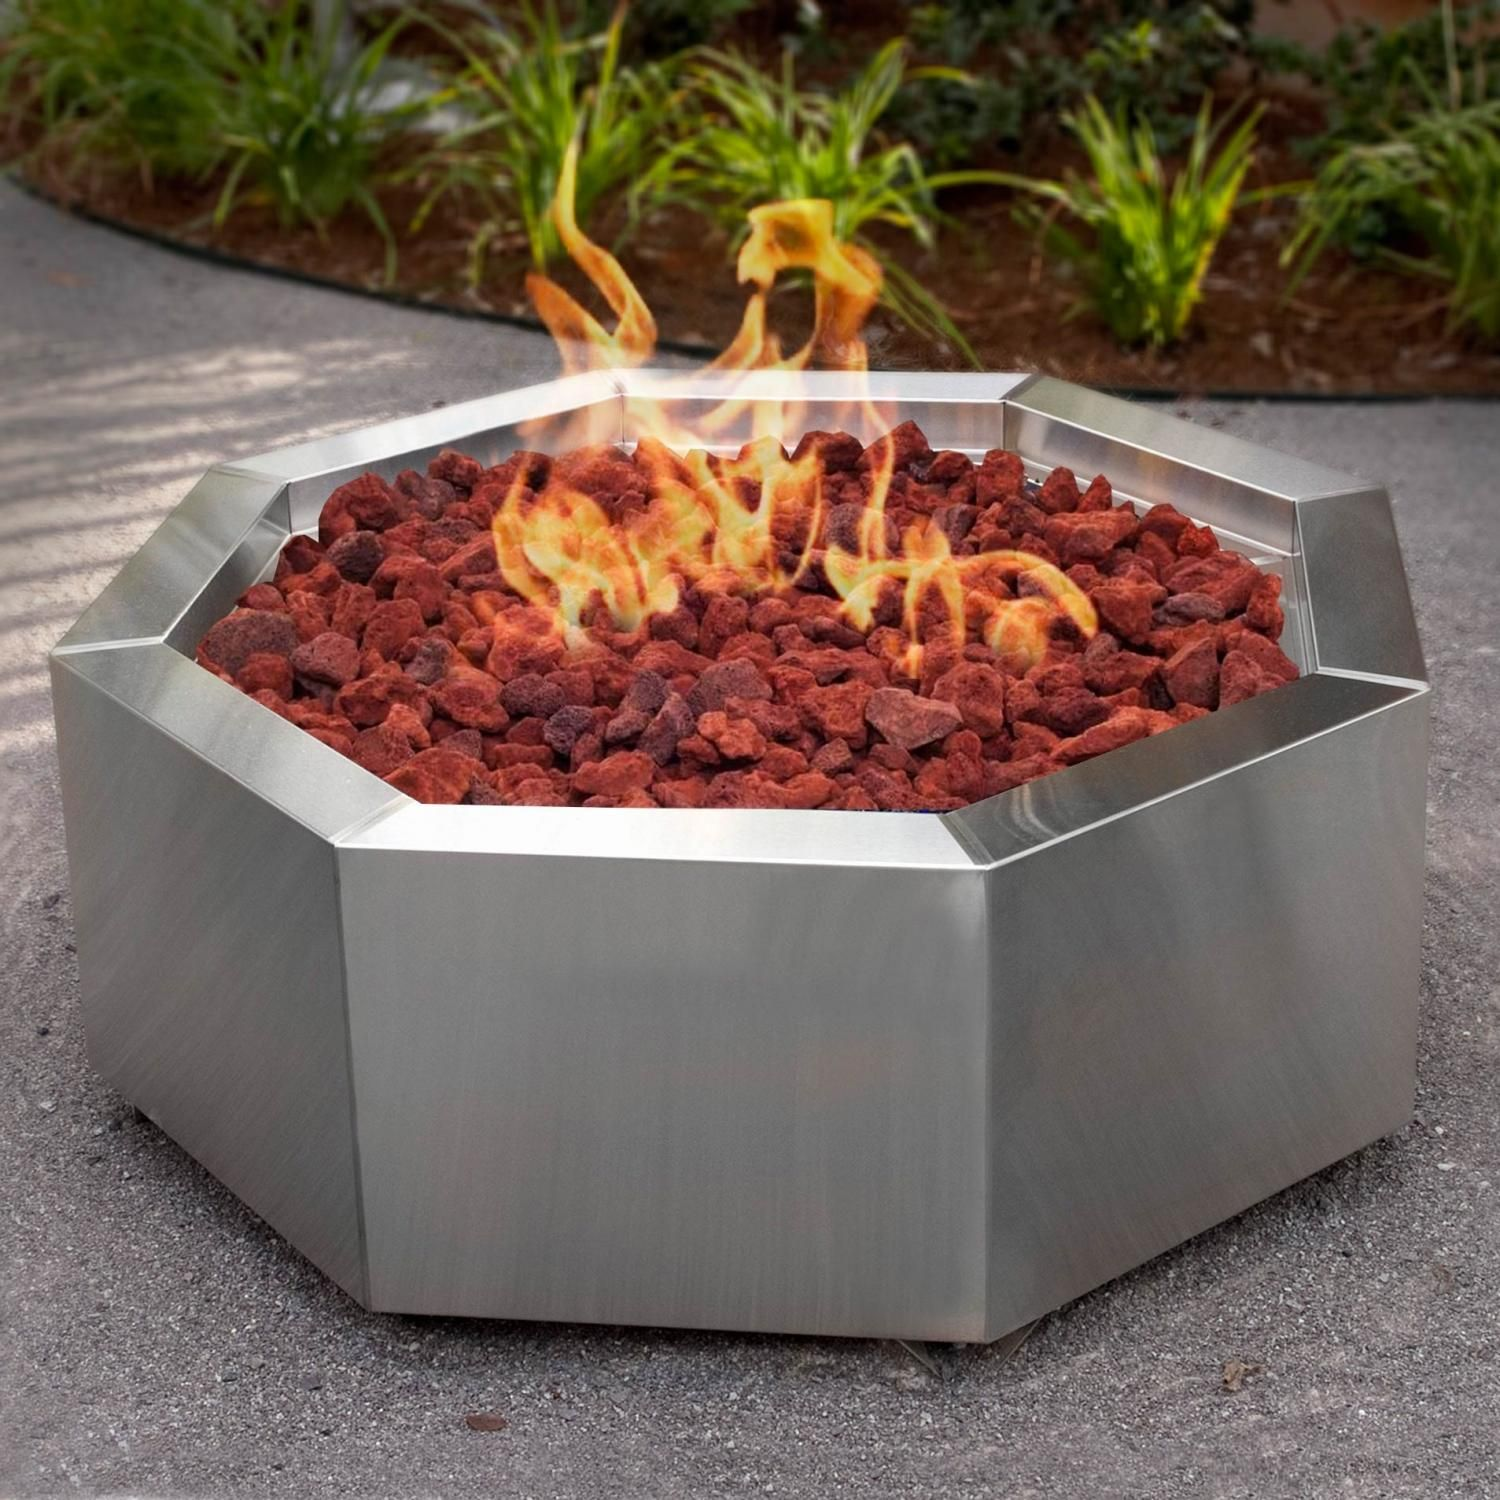 Lakeview Outdoor Designs 42 Inch Stainless Steel Octagon Fire Pit Natural Gas Bbqguys Fire Pit Fire Pit Materials Stainless Steel Fire Pit